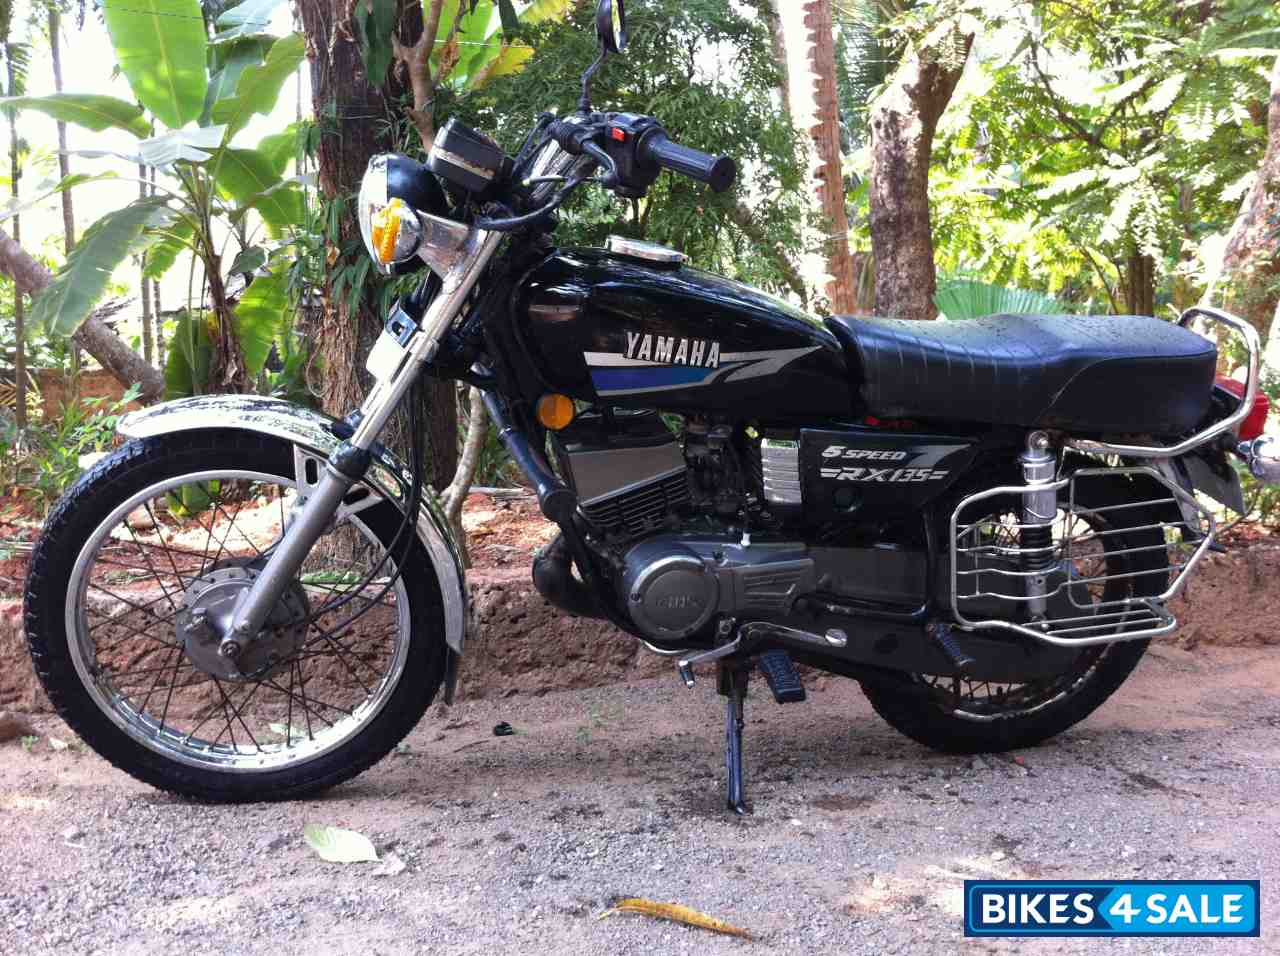 second hand yamaha rx 135 in kozhikode 2000 model yamaha